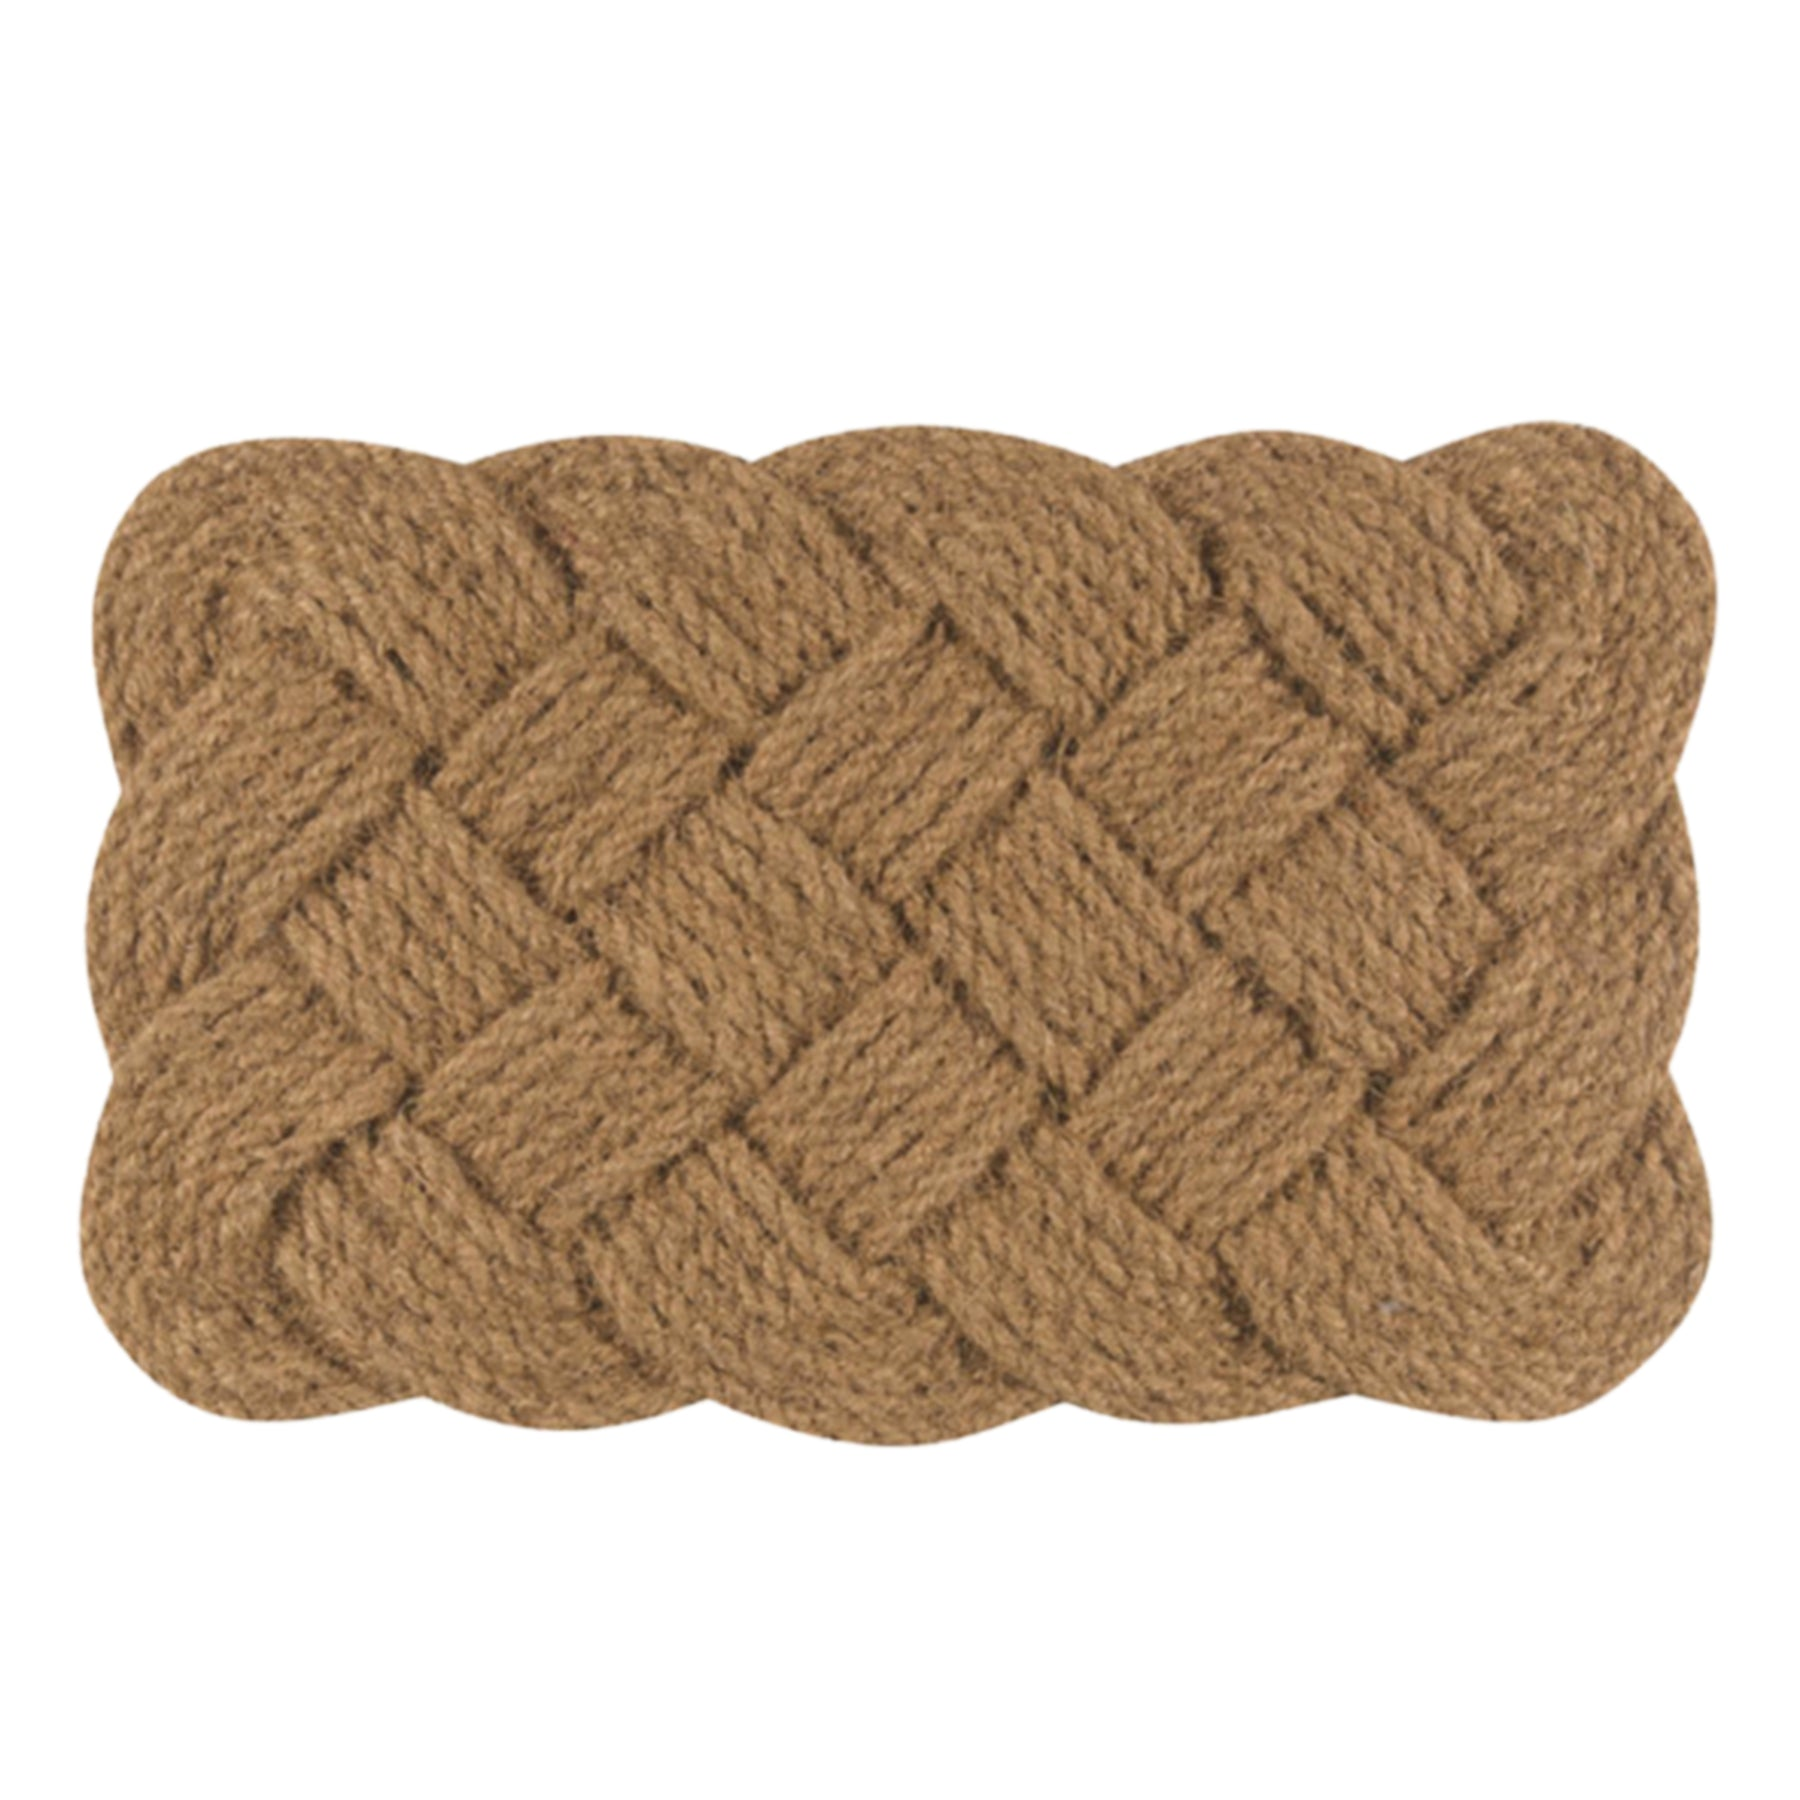 Door Mat - Coir Rope